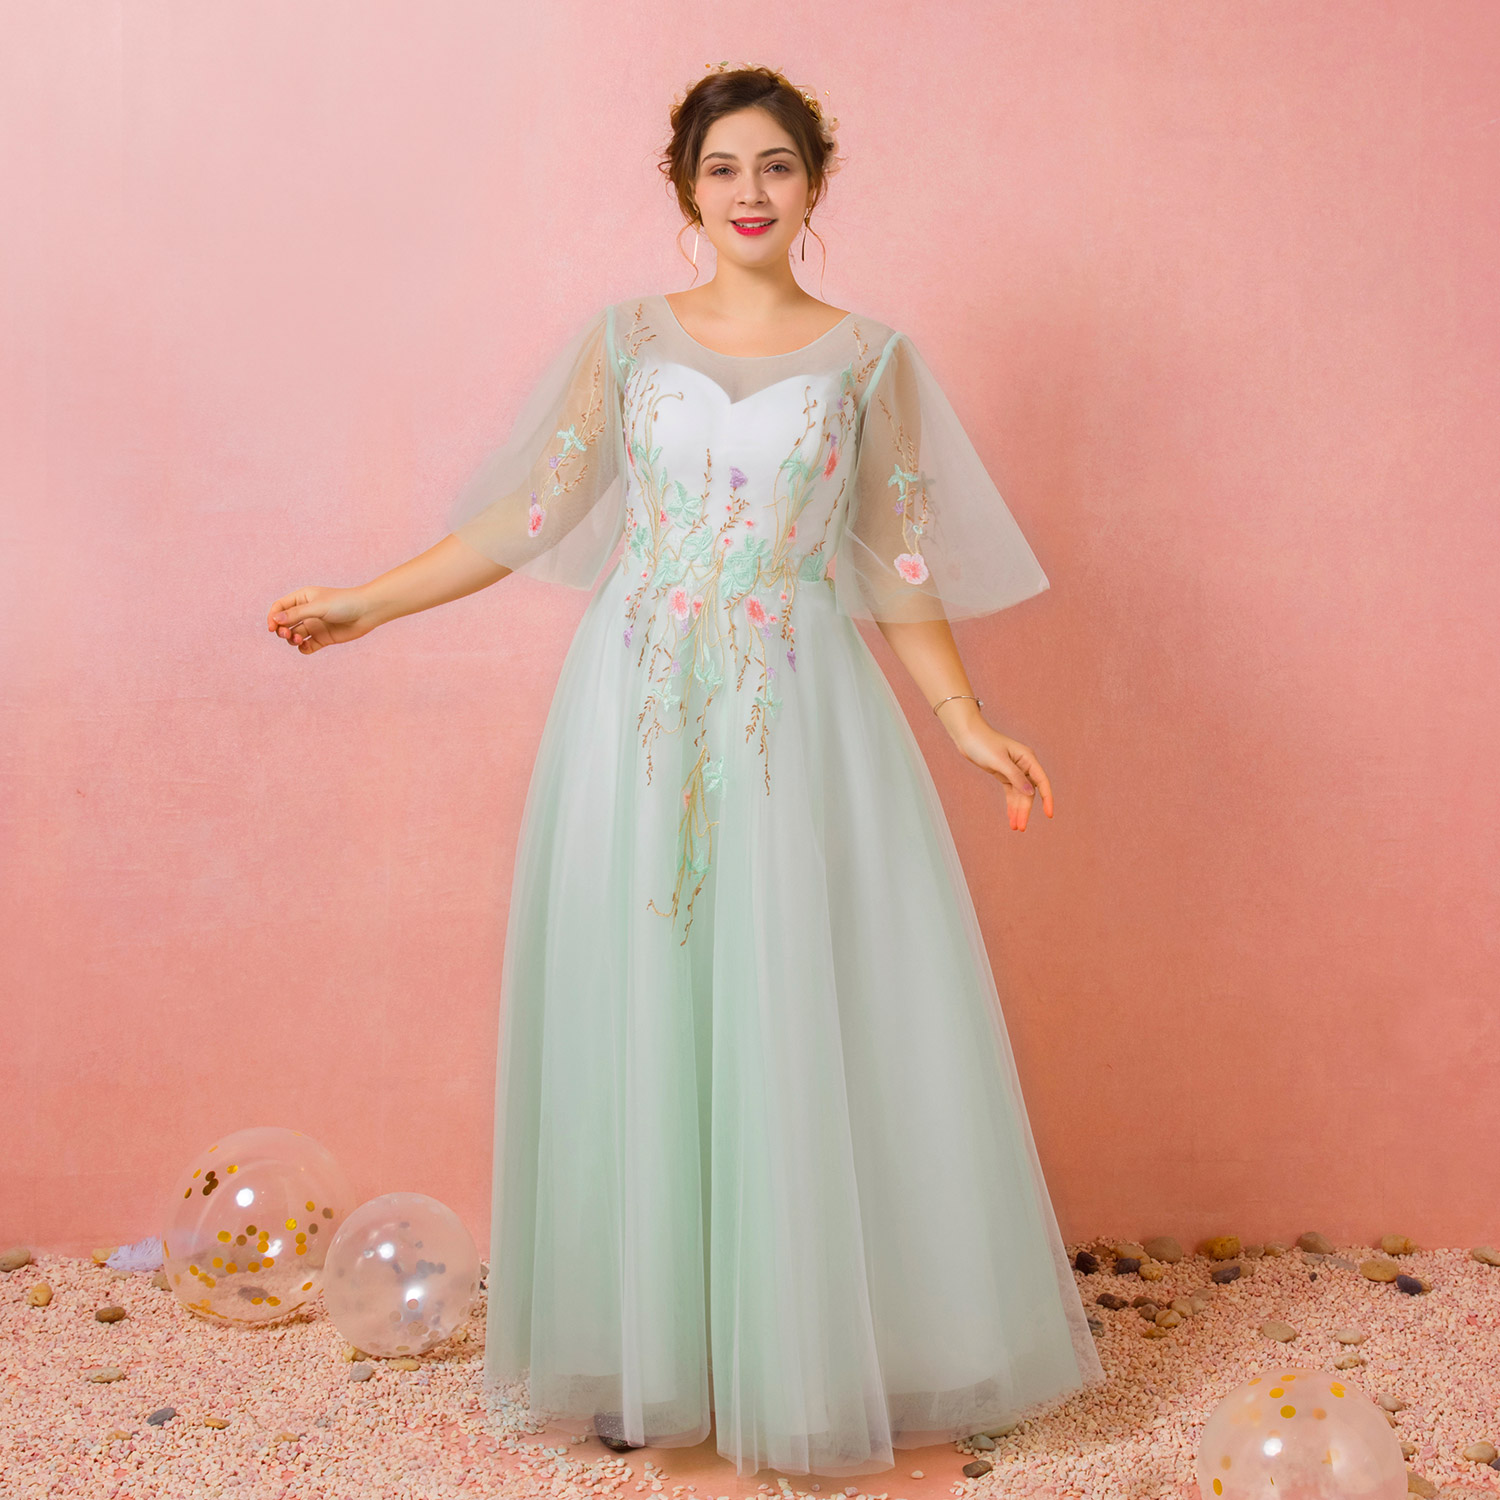 Evening Dresses A-line Sweetheart Floor-length Llusion Appliques Wedding Guest Party Gowns Long Prom Dress